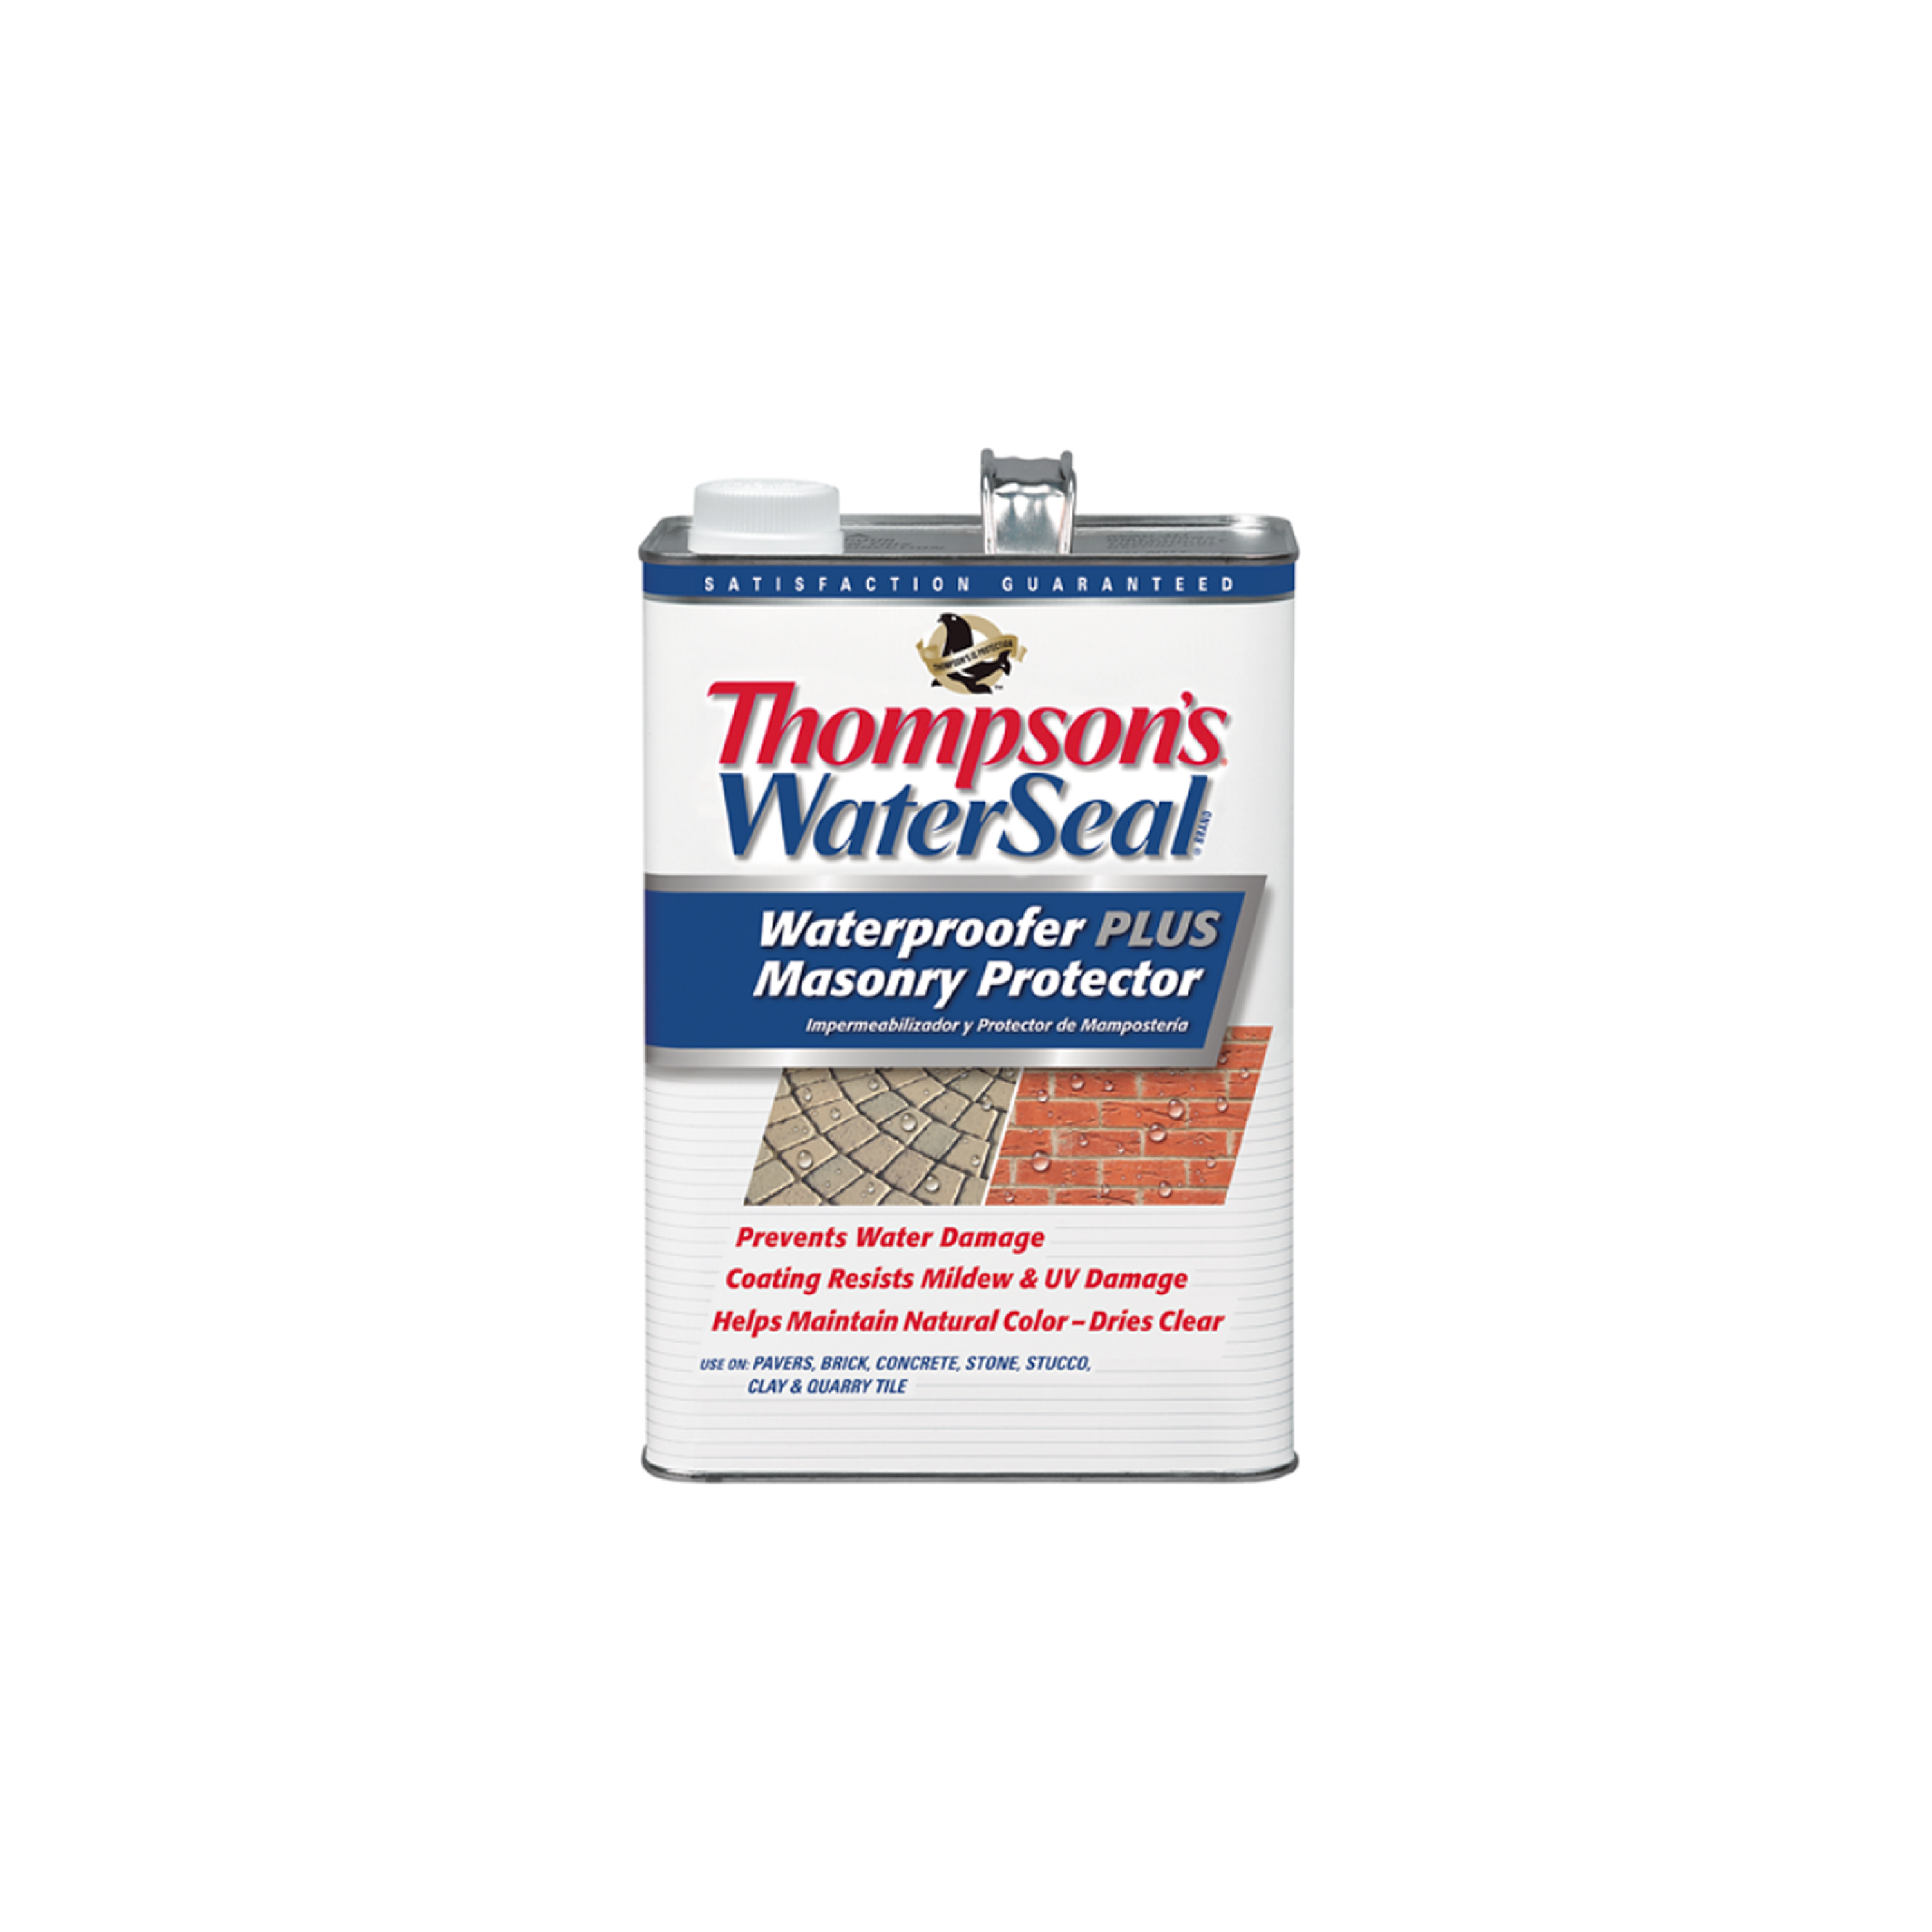 Thompson's WaterSeal Clear Waterproofer Plus Masonry Protector, 1-Gal by Sherwin-Williams